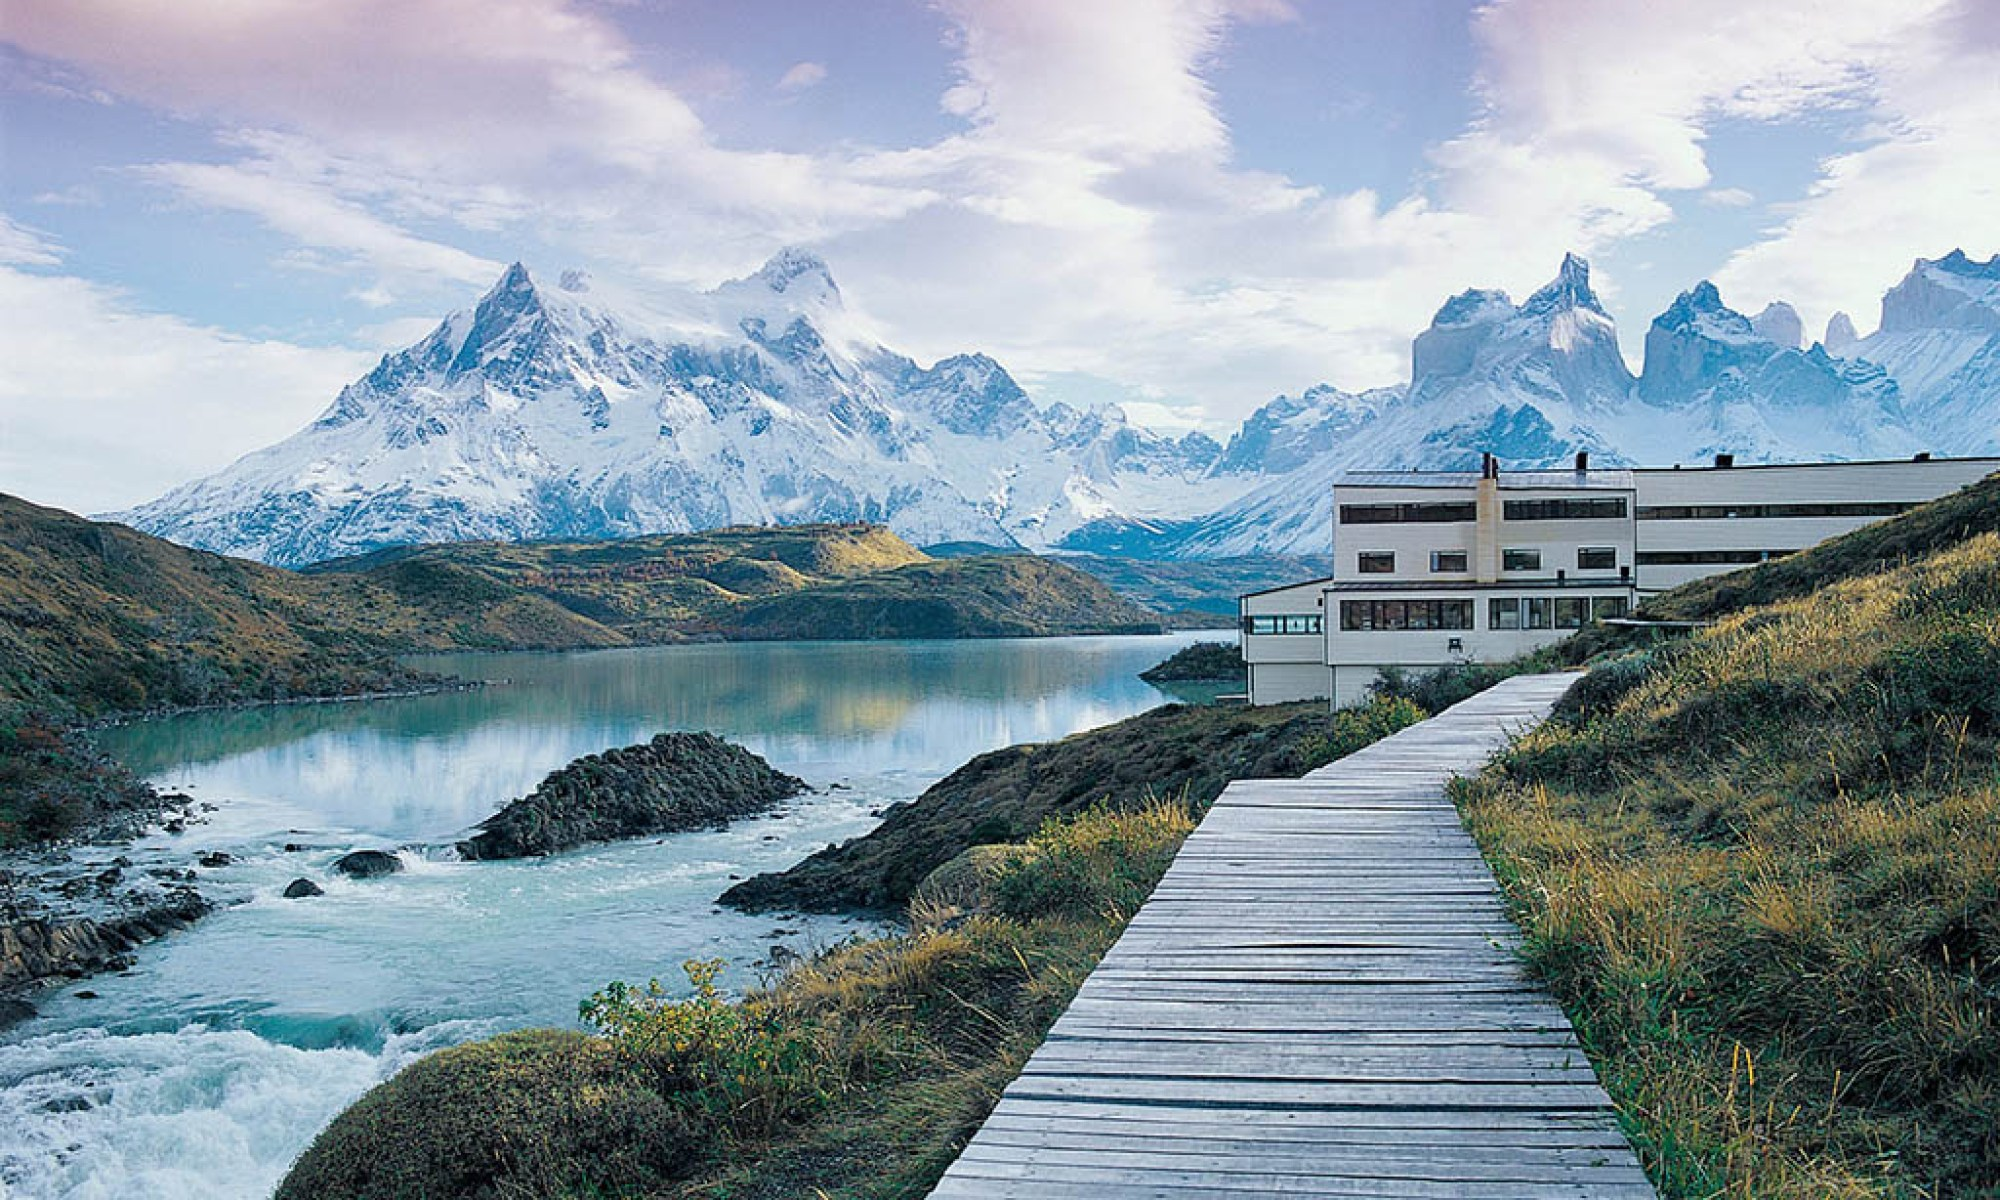 From the shores of Lago Pehoe, Explora Patagonia offers a stunning view of the peaks of Torres Del Paine